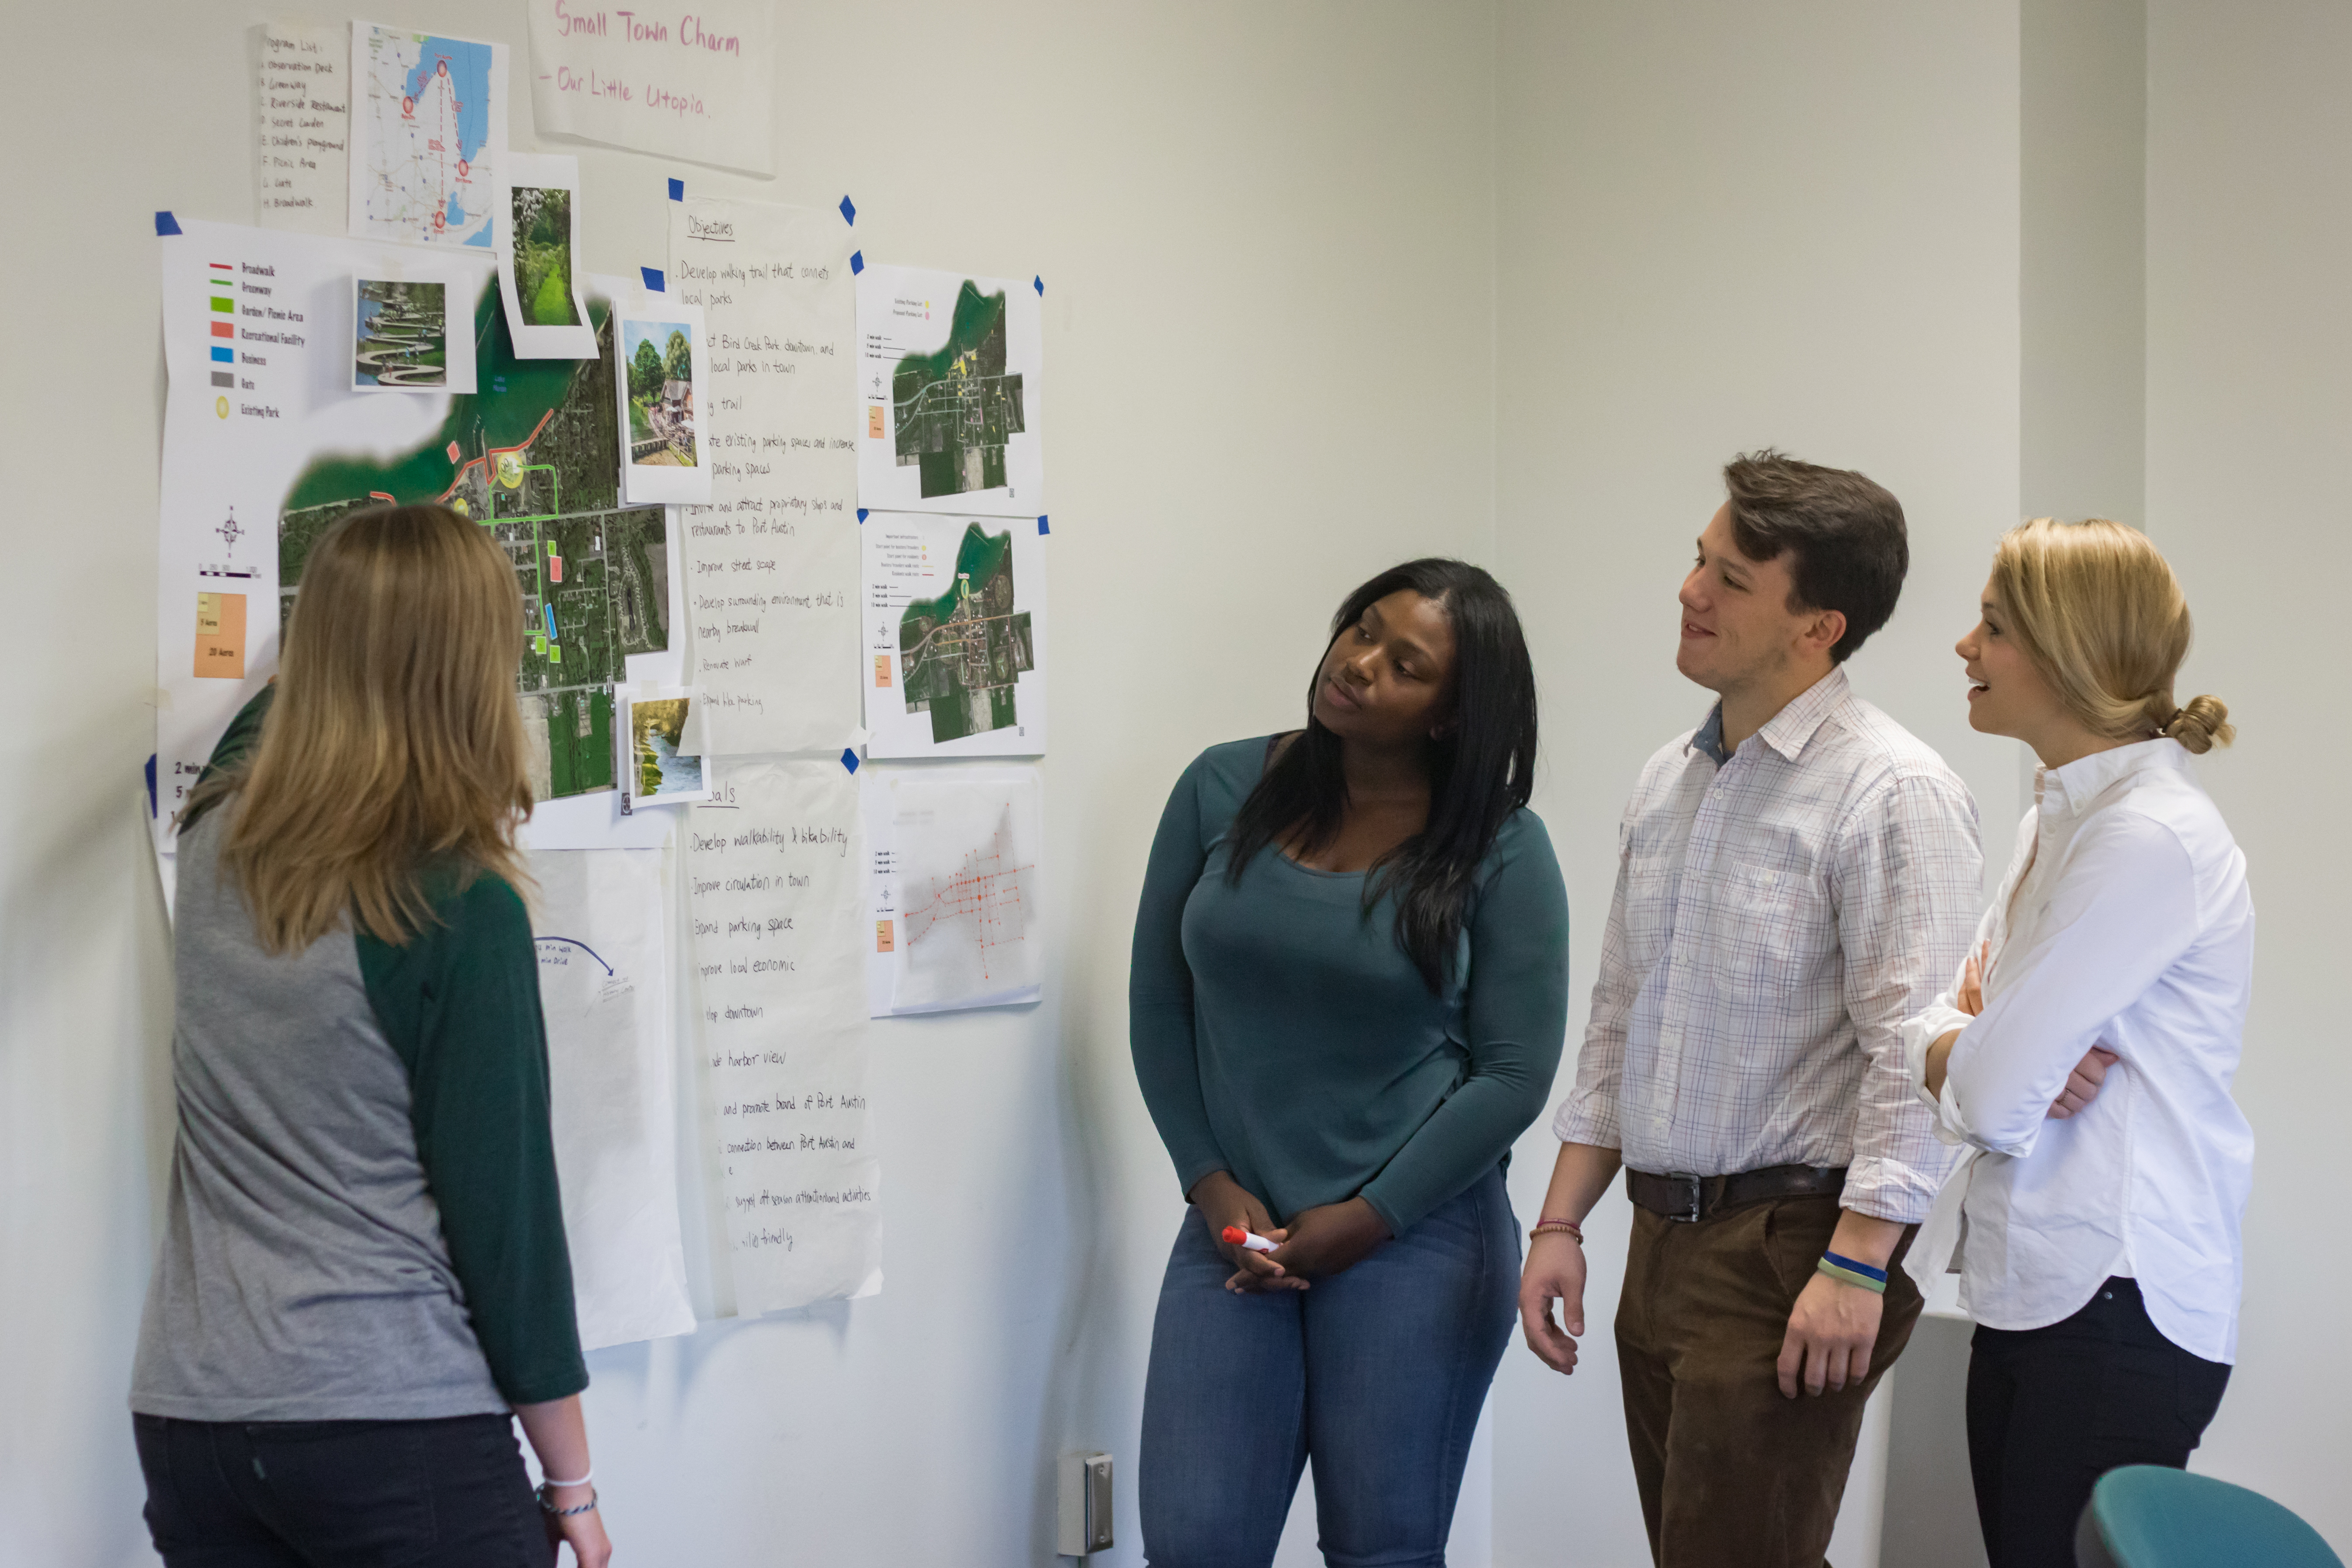 Urban and Regional Planning student presenting a poster while others watch.